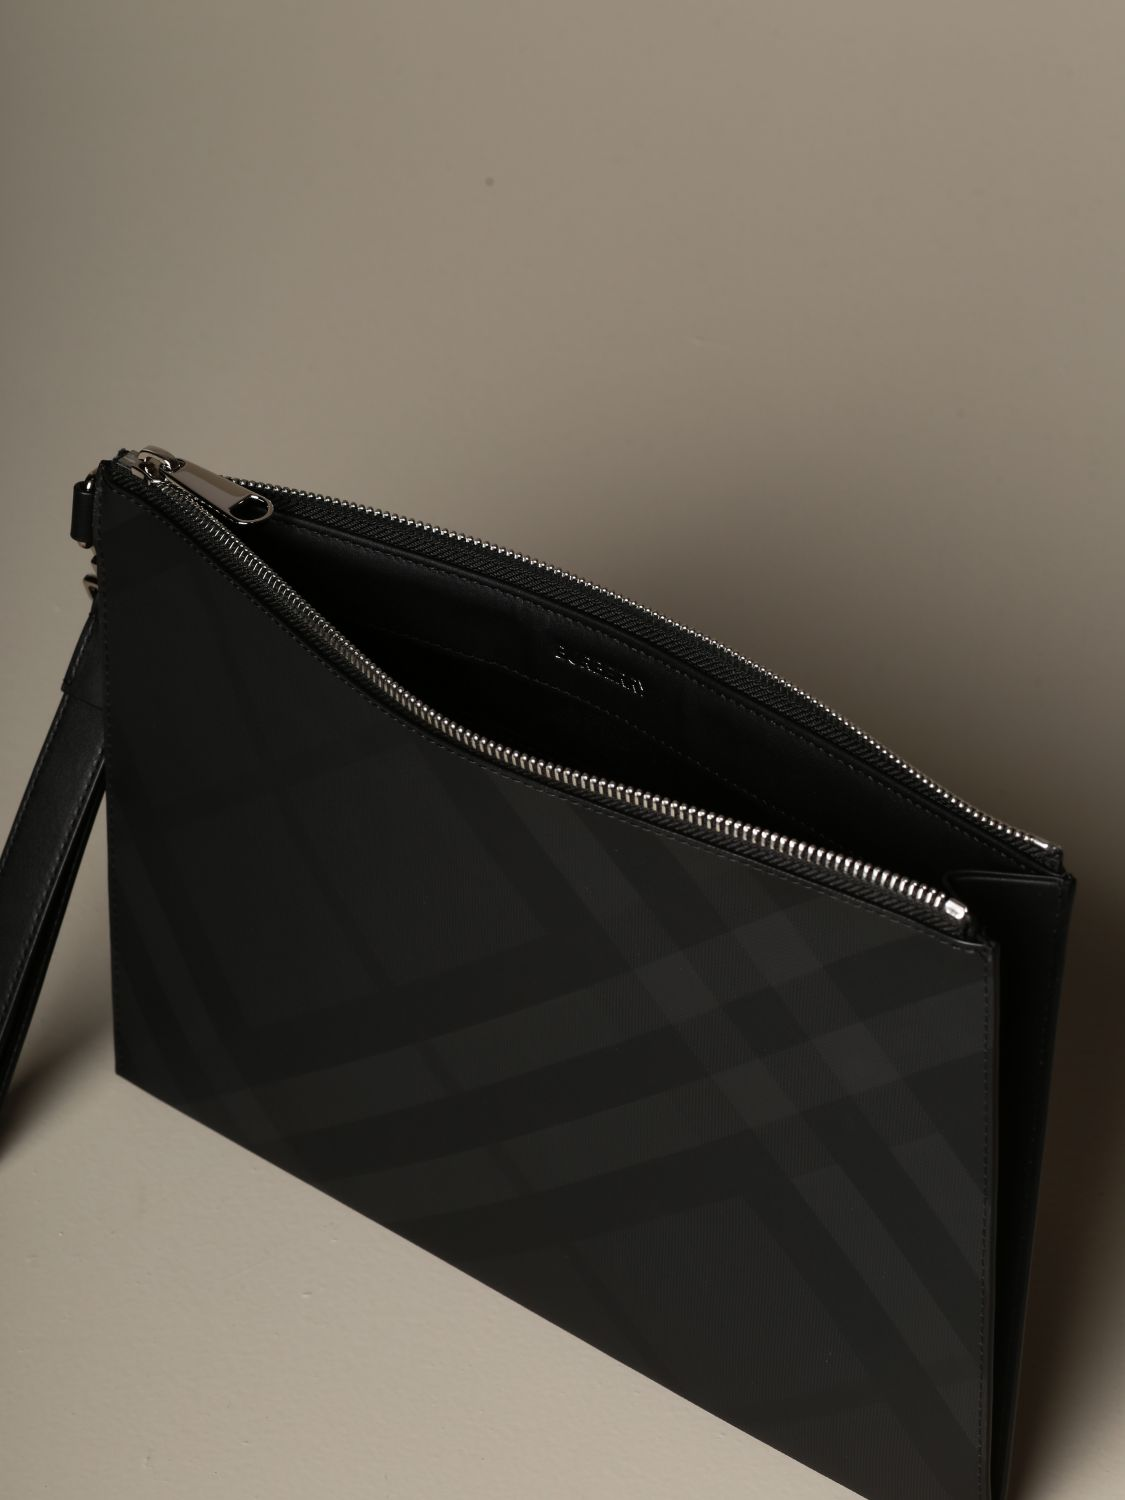 Wallet Burberry: Burberry pochette with London check motif lead 4